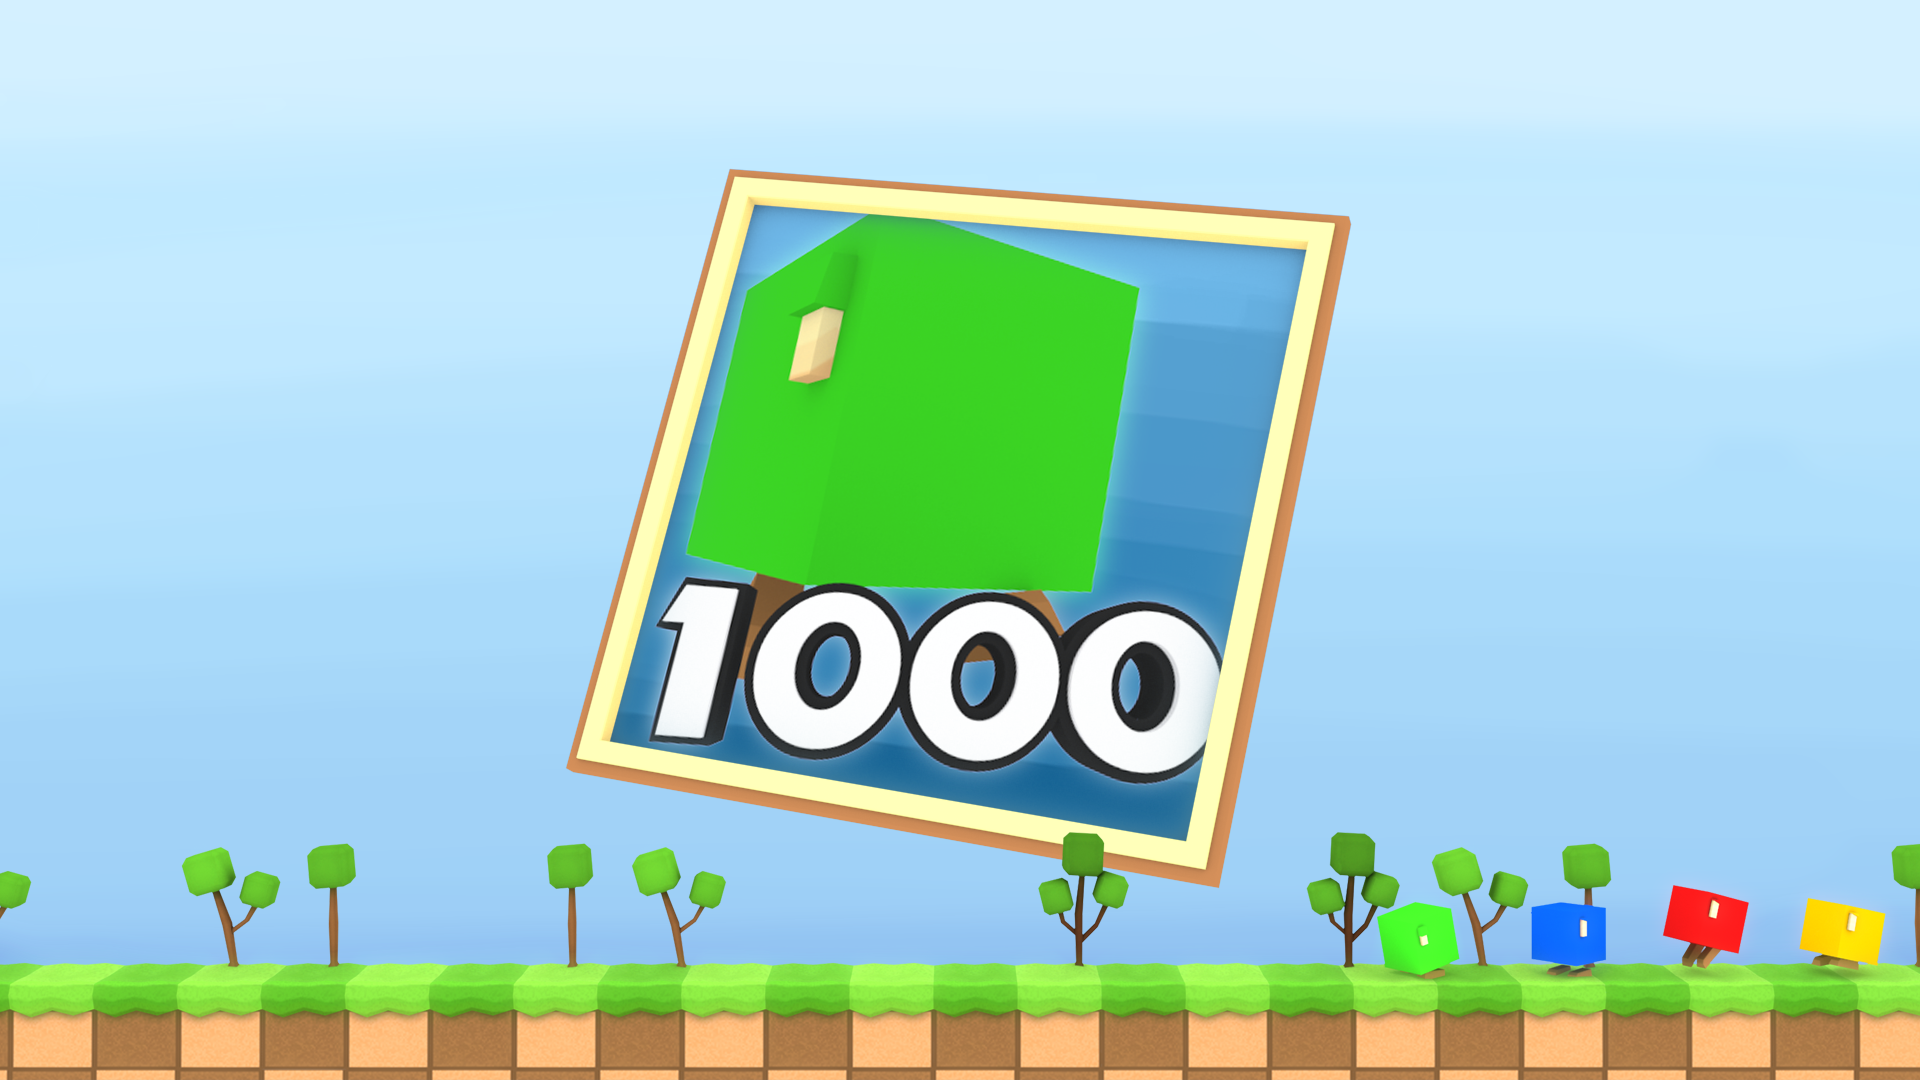 1000 moves